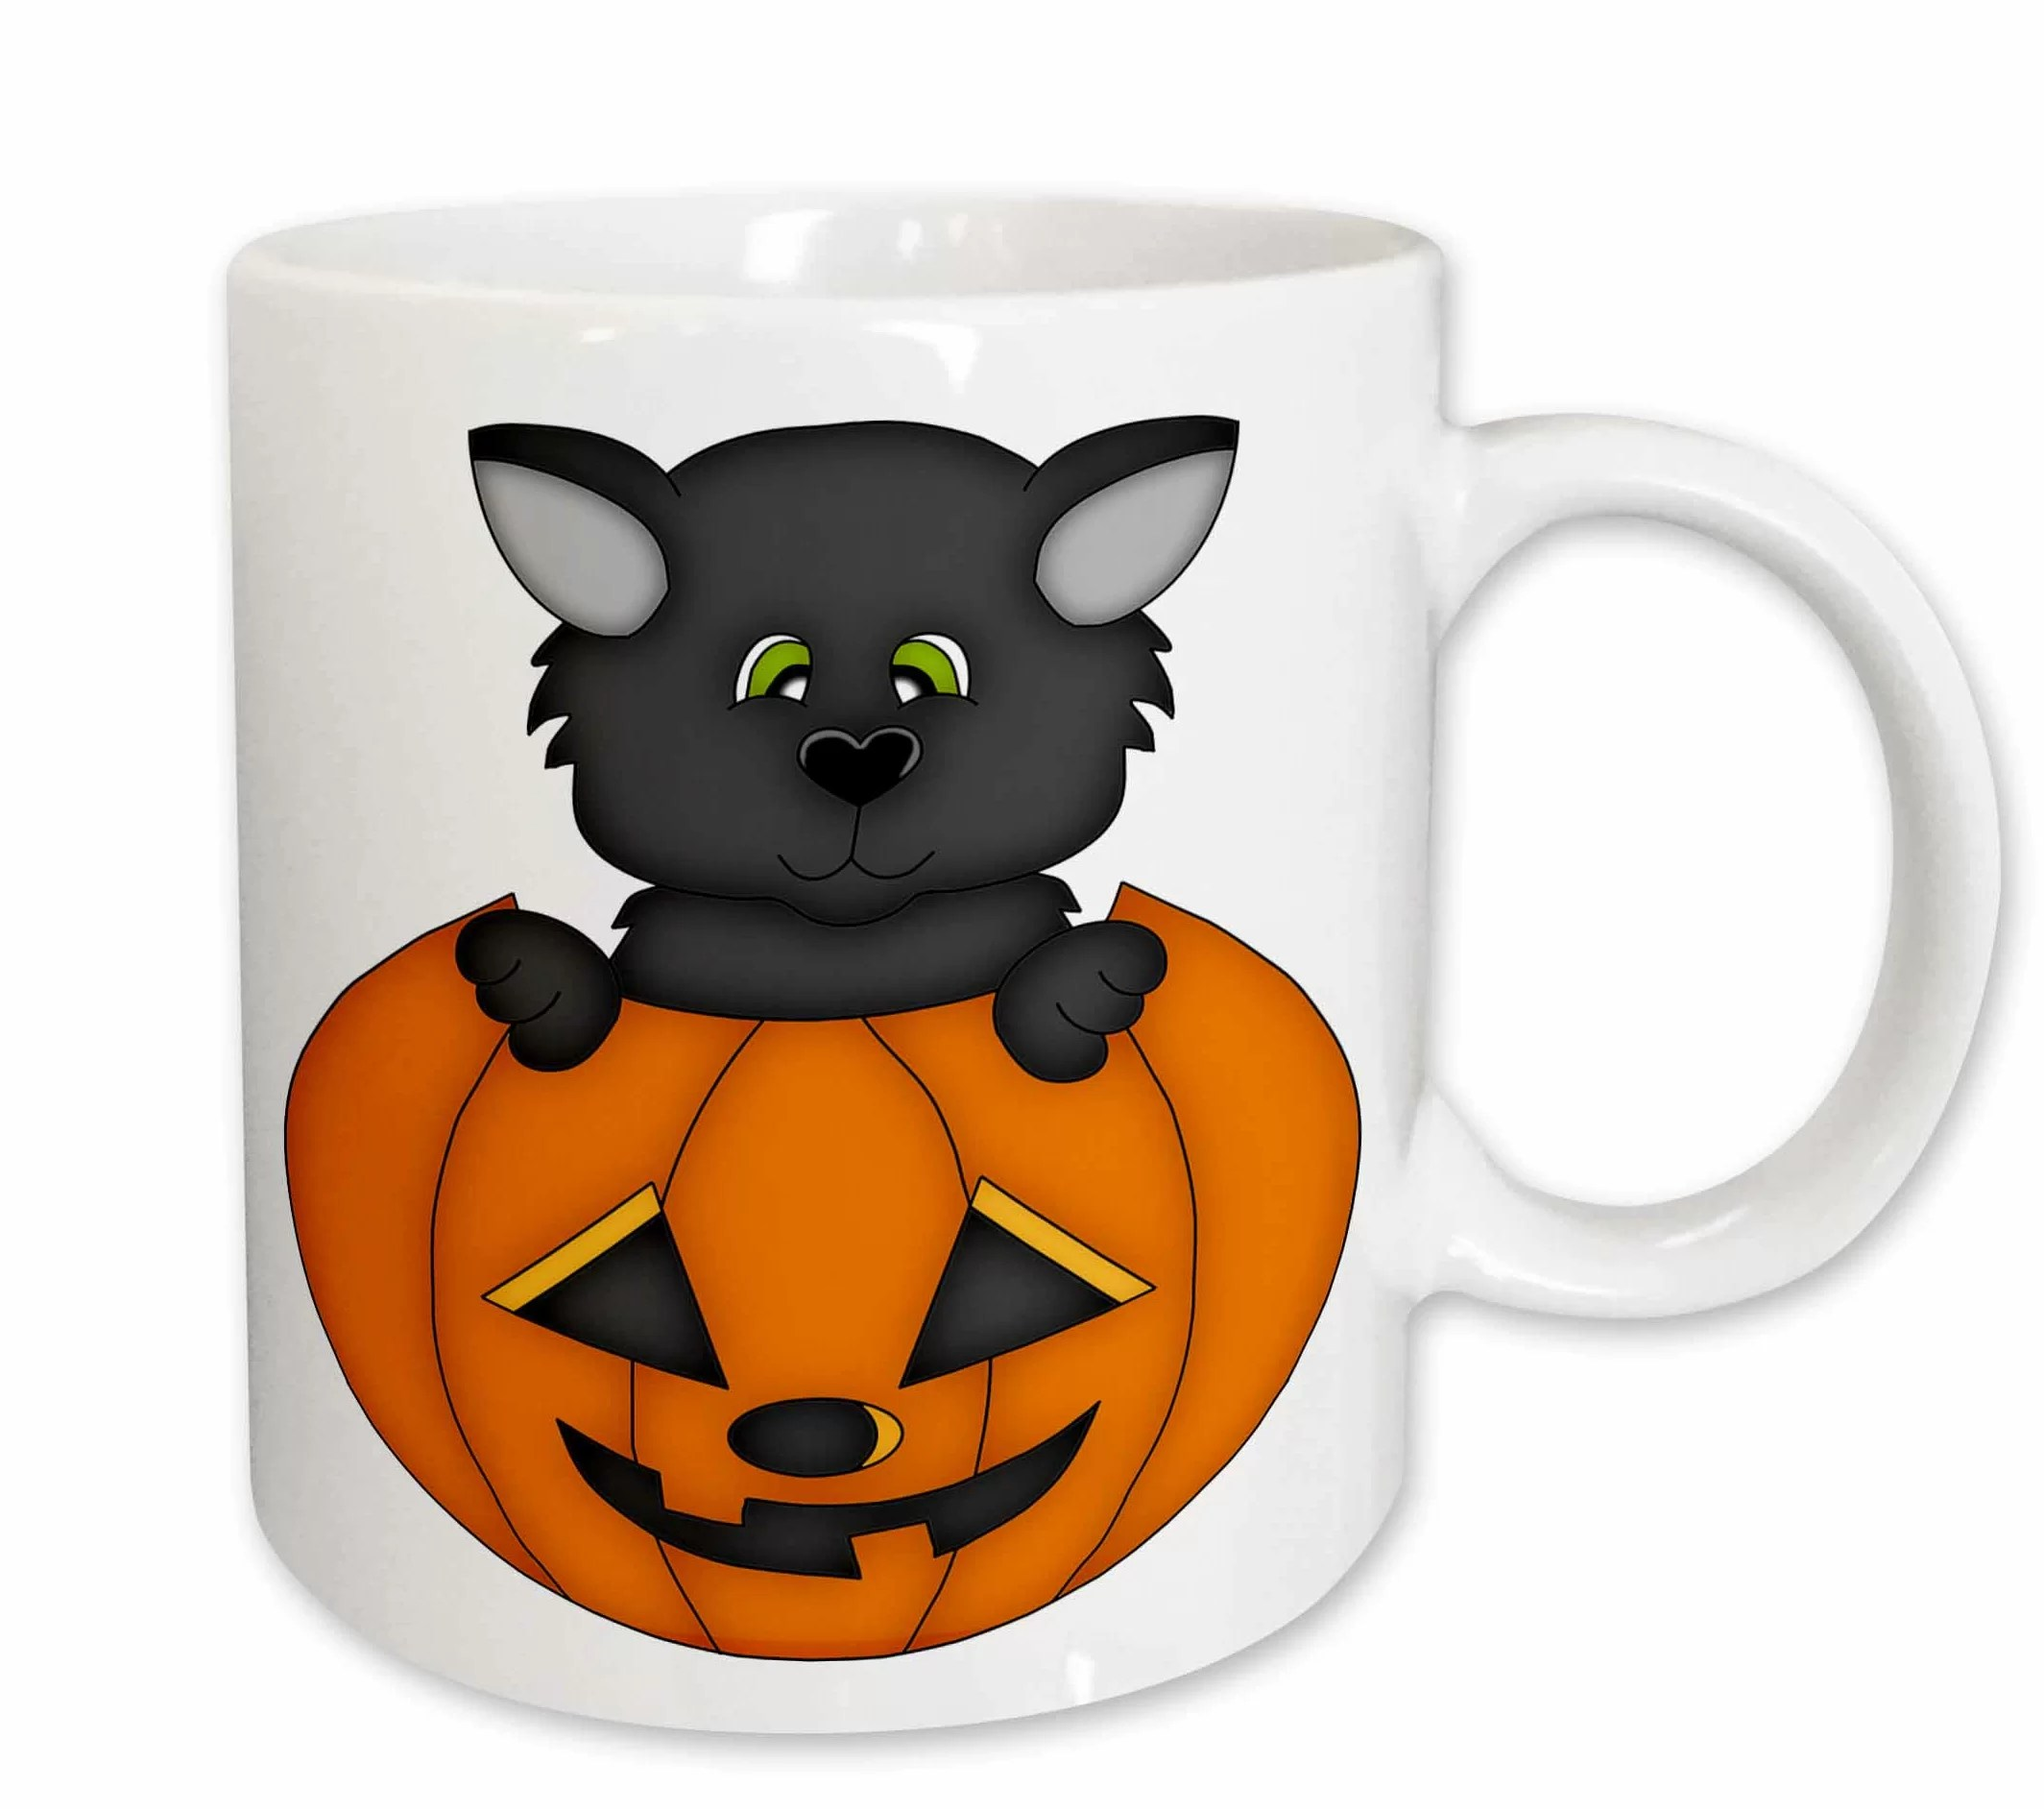 The Holiday Aisle Tate Cute Halloween Cat In A Pumpkin Illustration Coffee Mug Wayfair